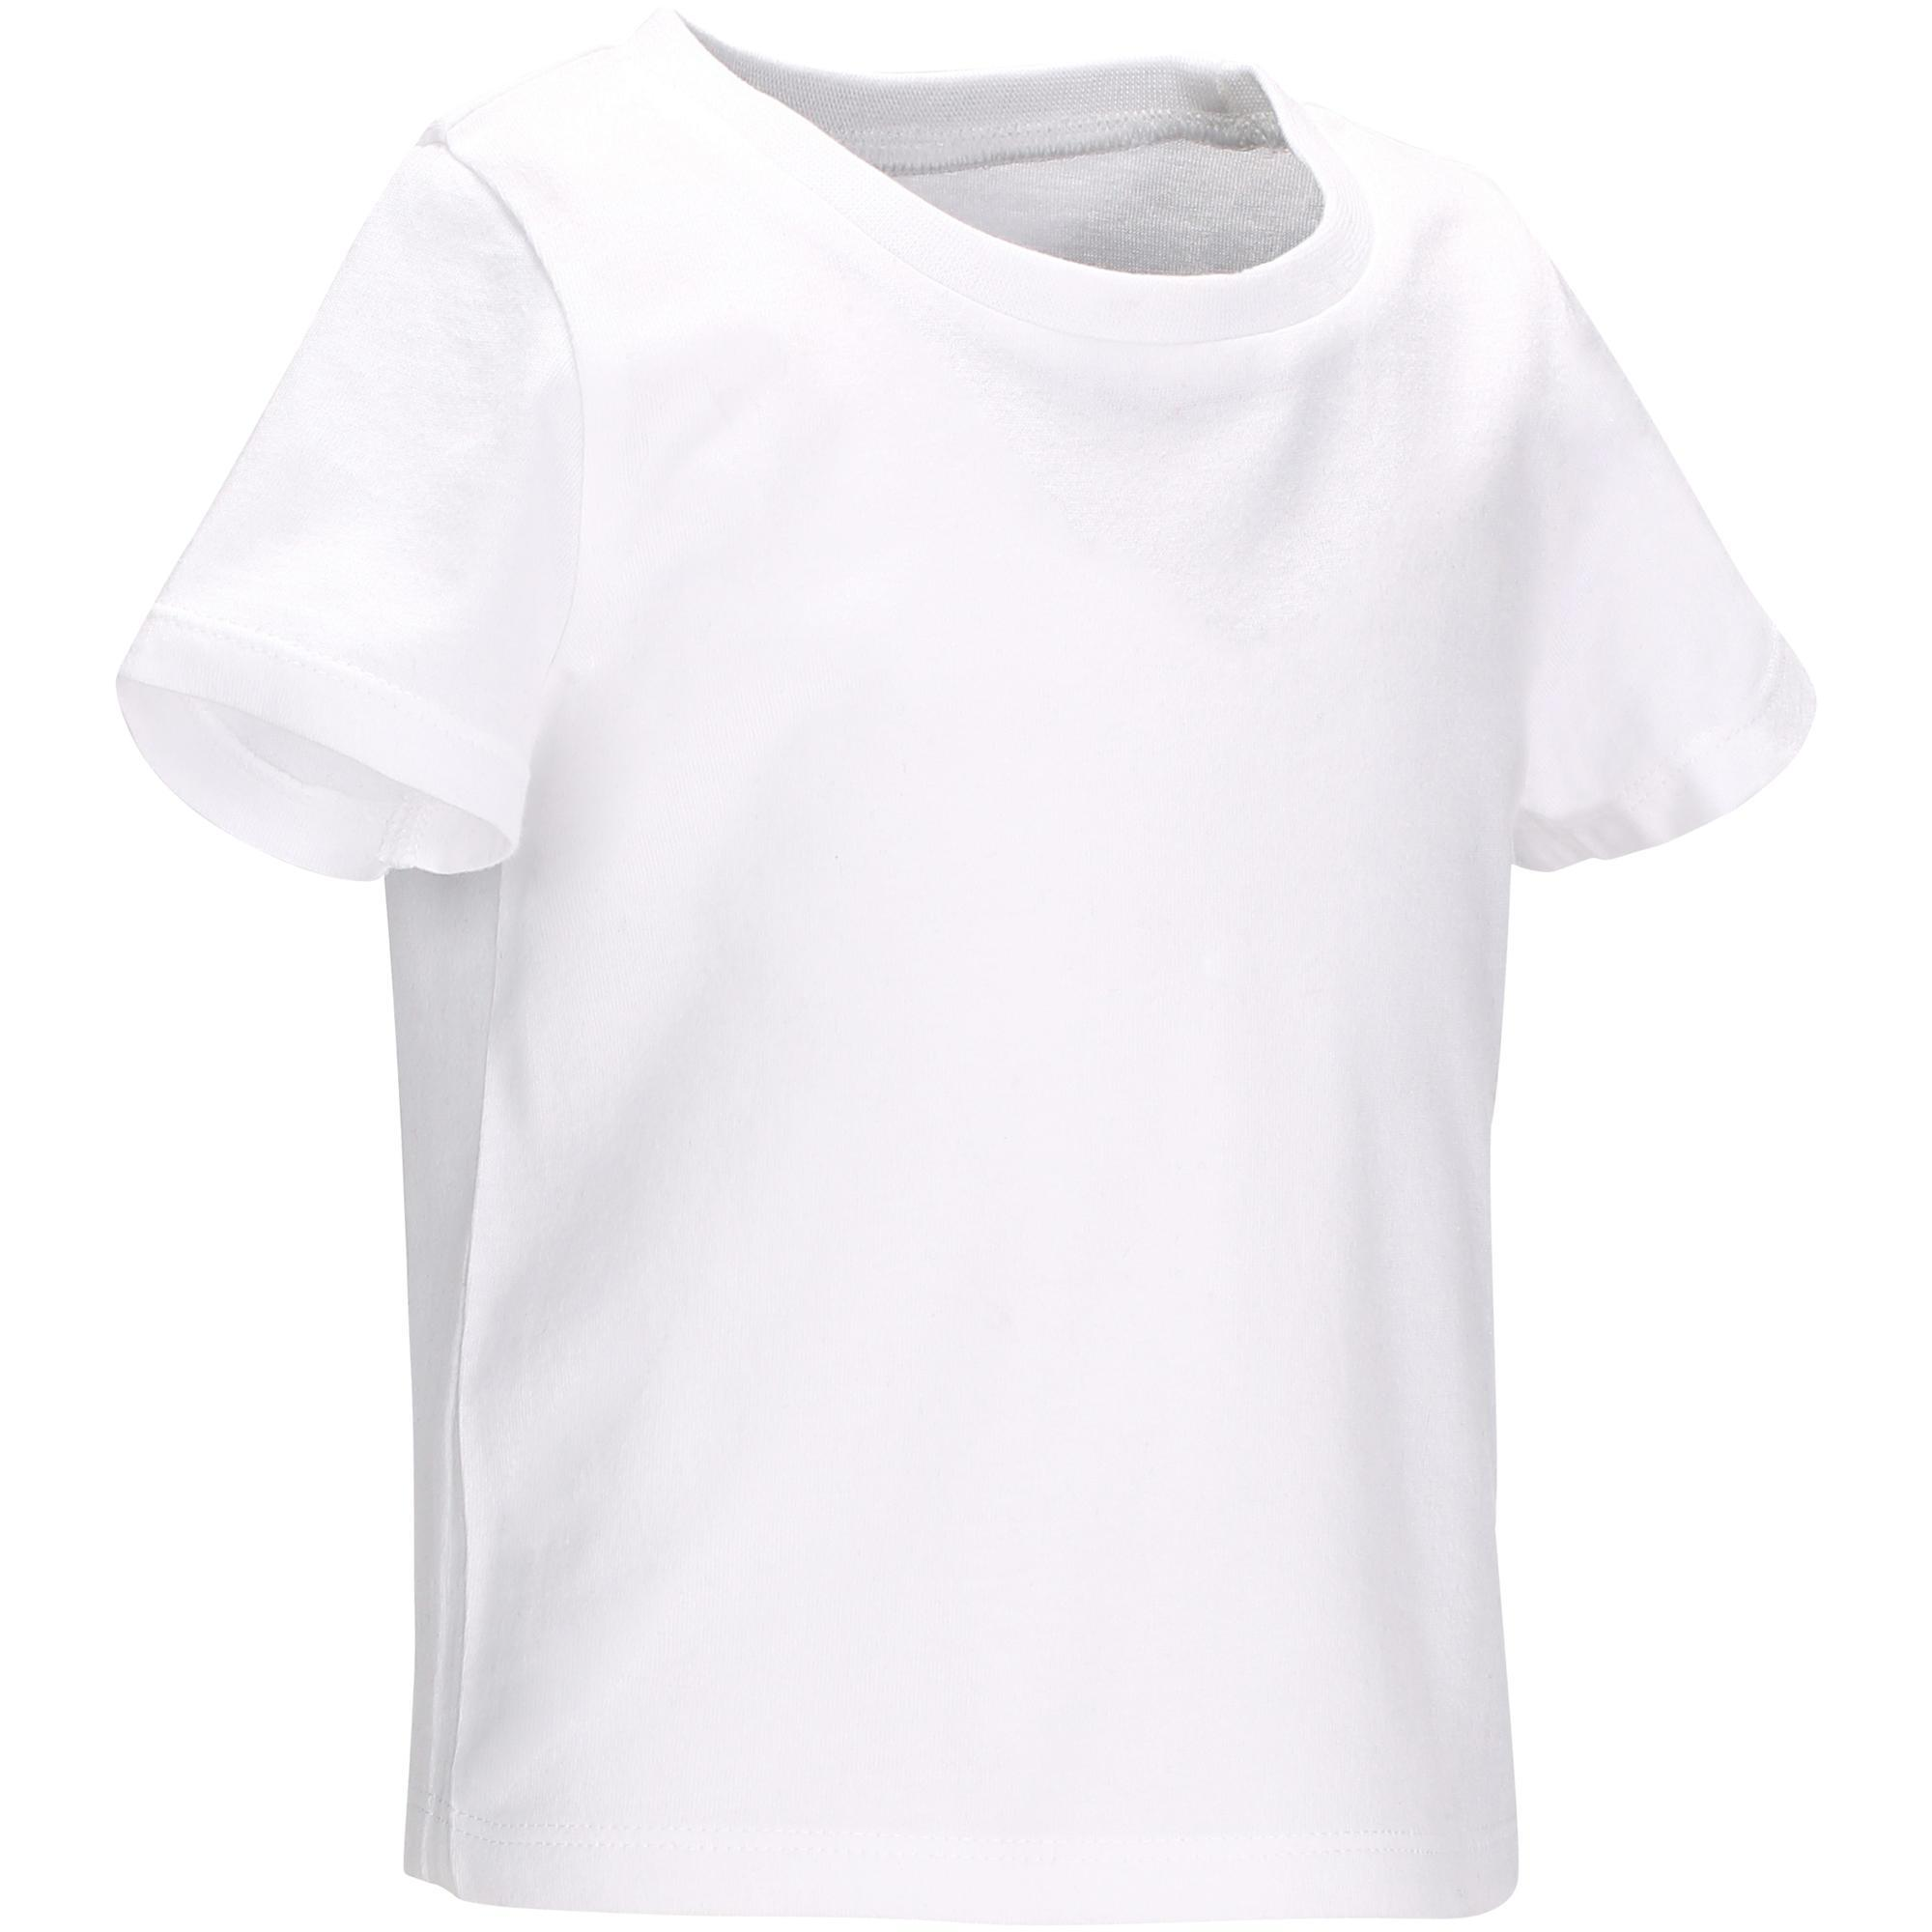 100 Baby Gym Short Sleeved T Shirt White